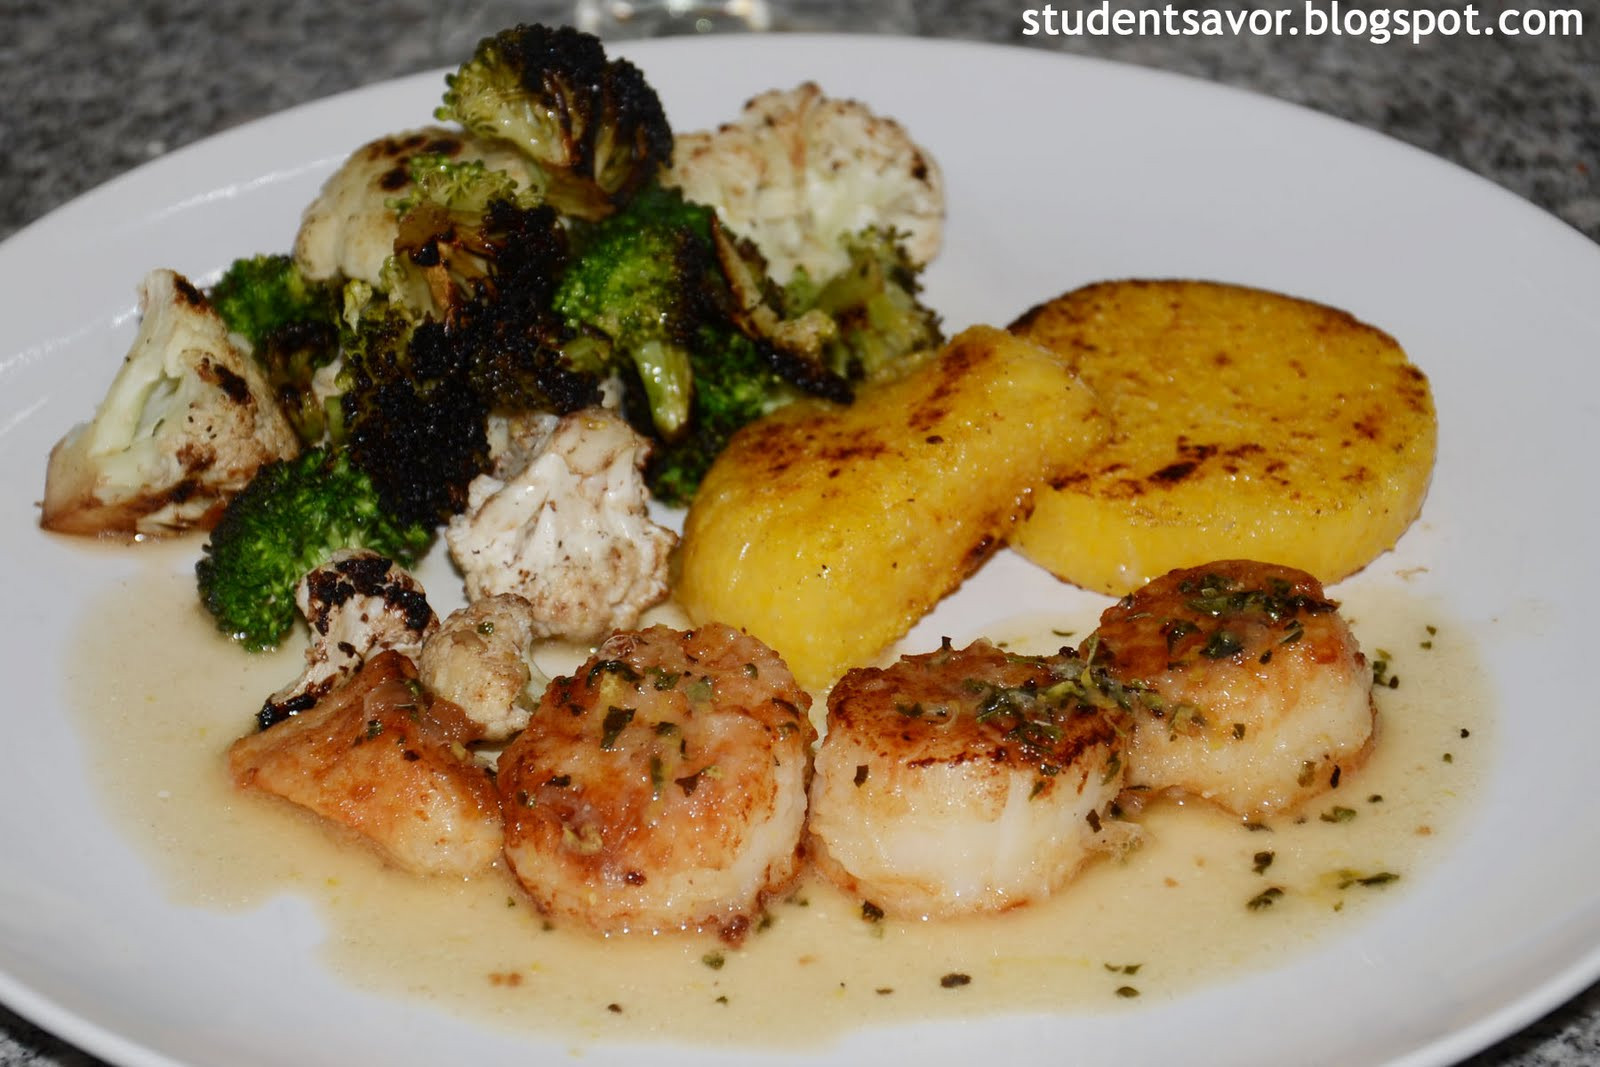 Scallops Side Dishes  STUDENT SAVOR Scallops with Butter & Wine Sauce